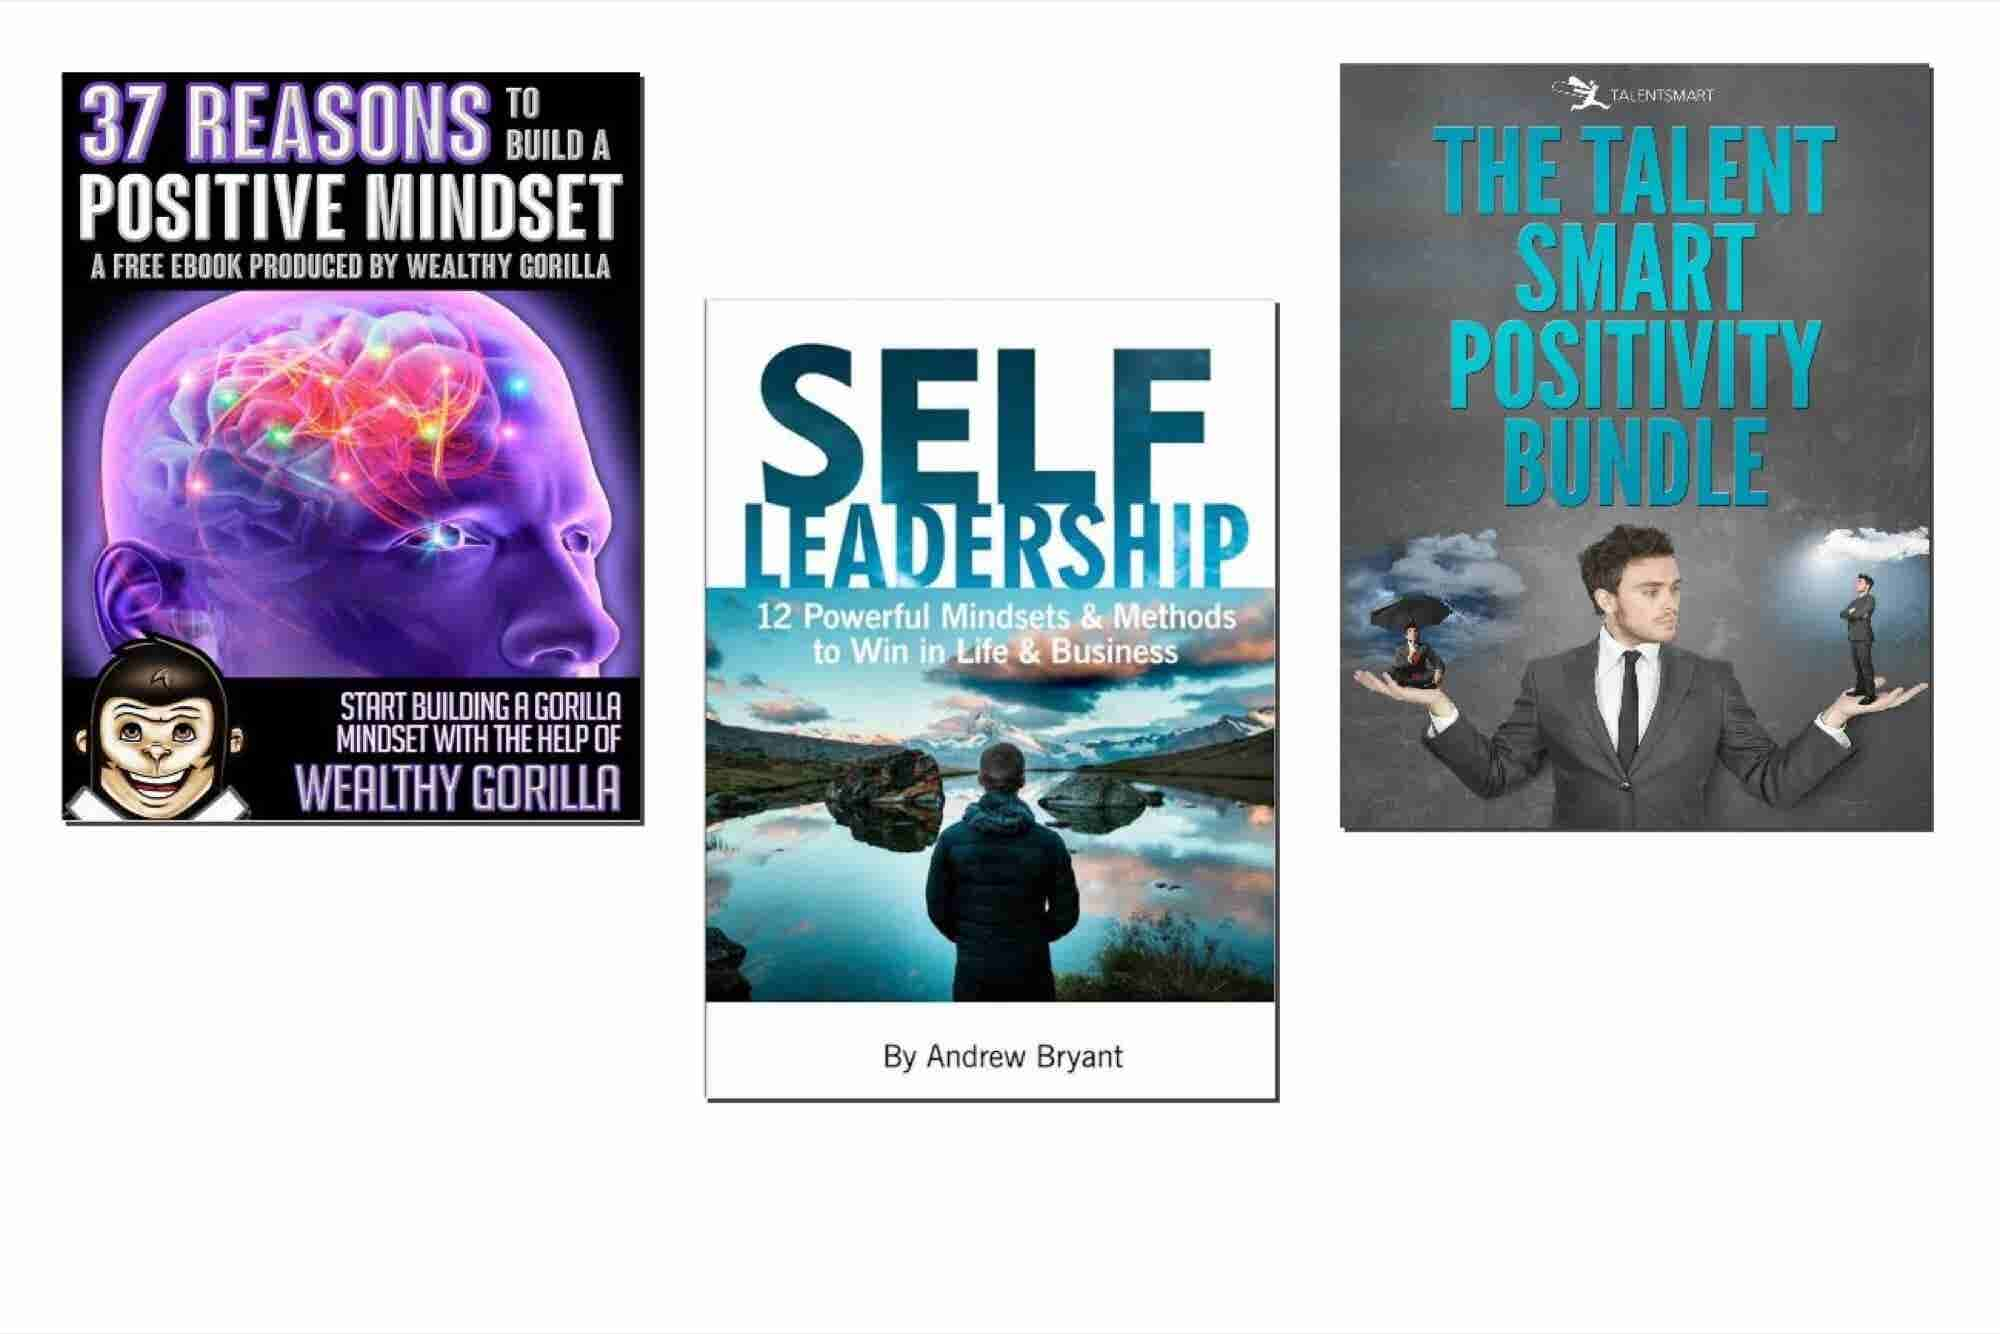 10 Free eBooks to Raise Your Consciousness and Self-Fulfillment